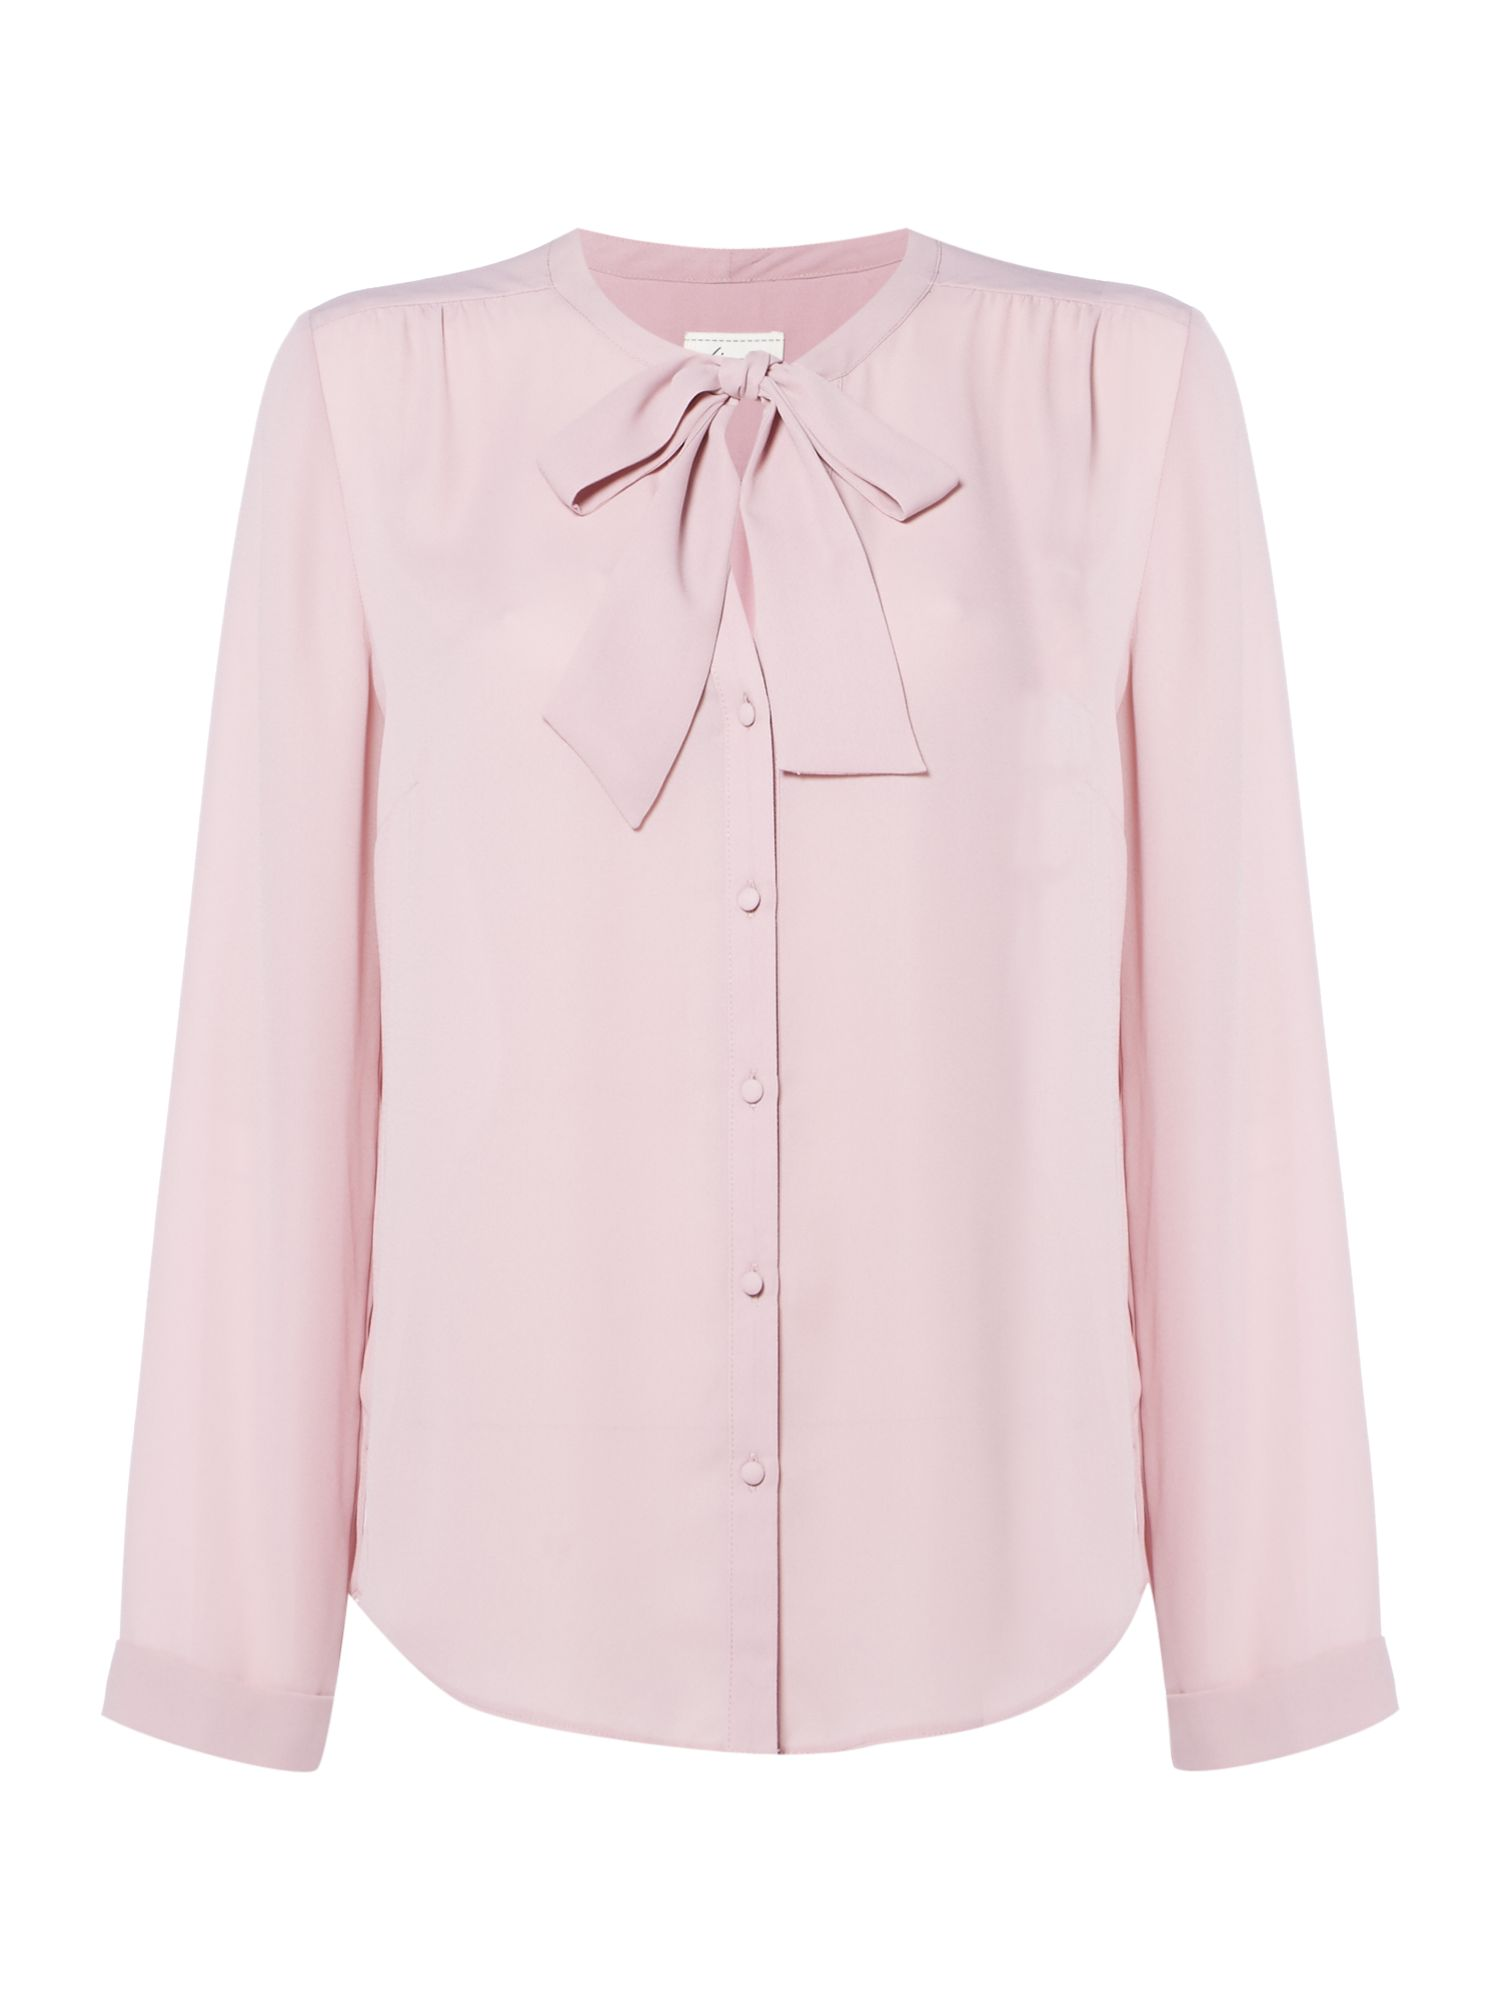 1920sStyleBlouses Linea Pussy bow blouse Pink £39.00 AT vintagedancer.com